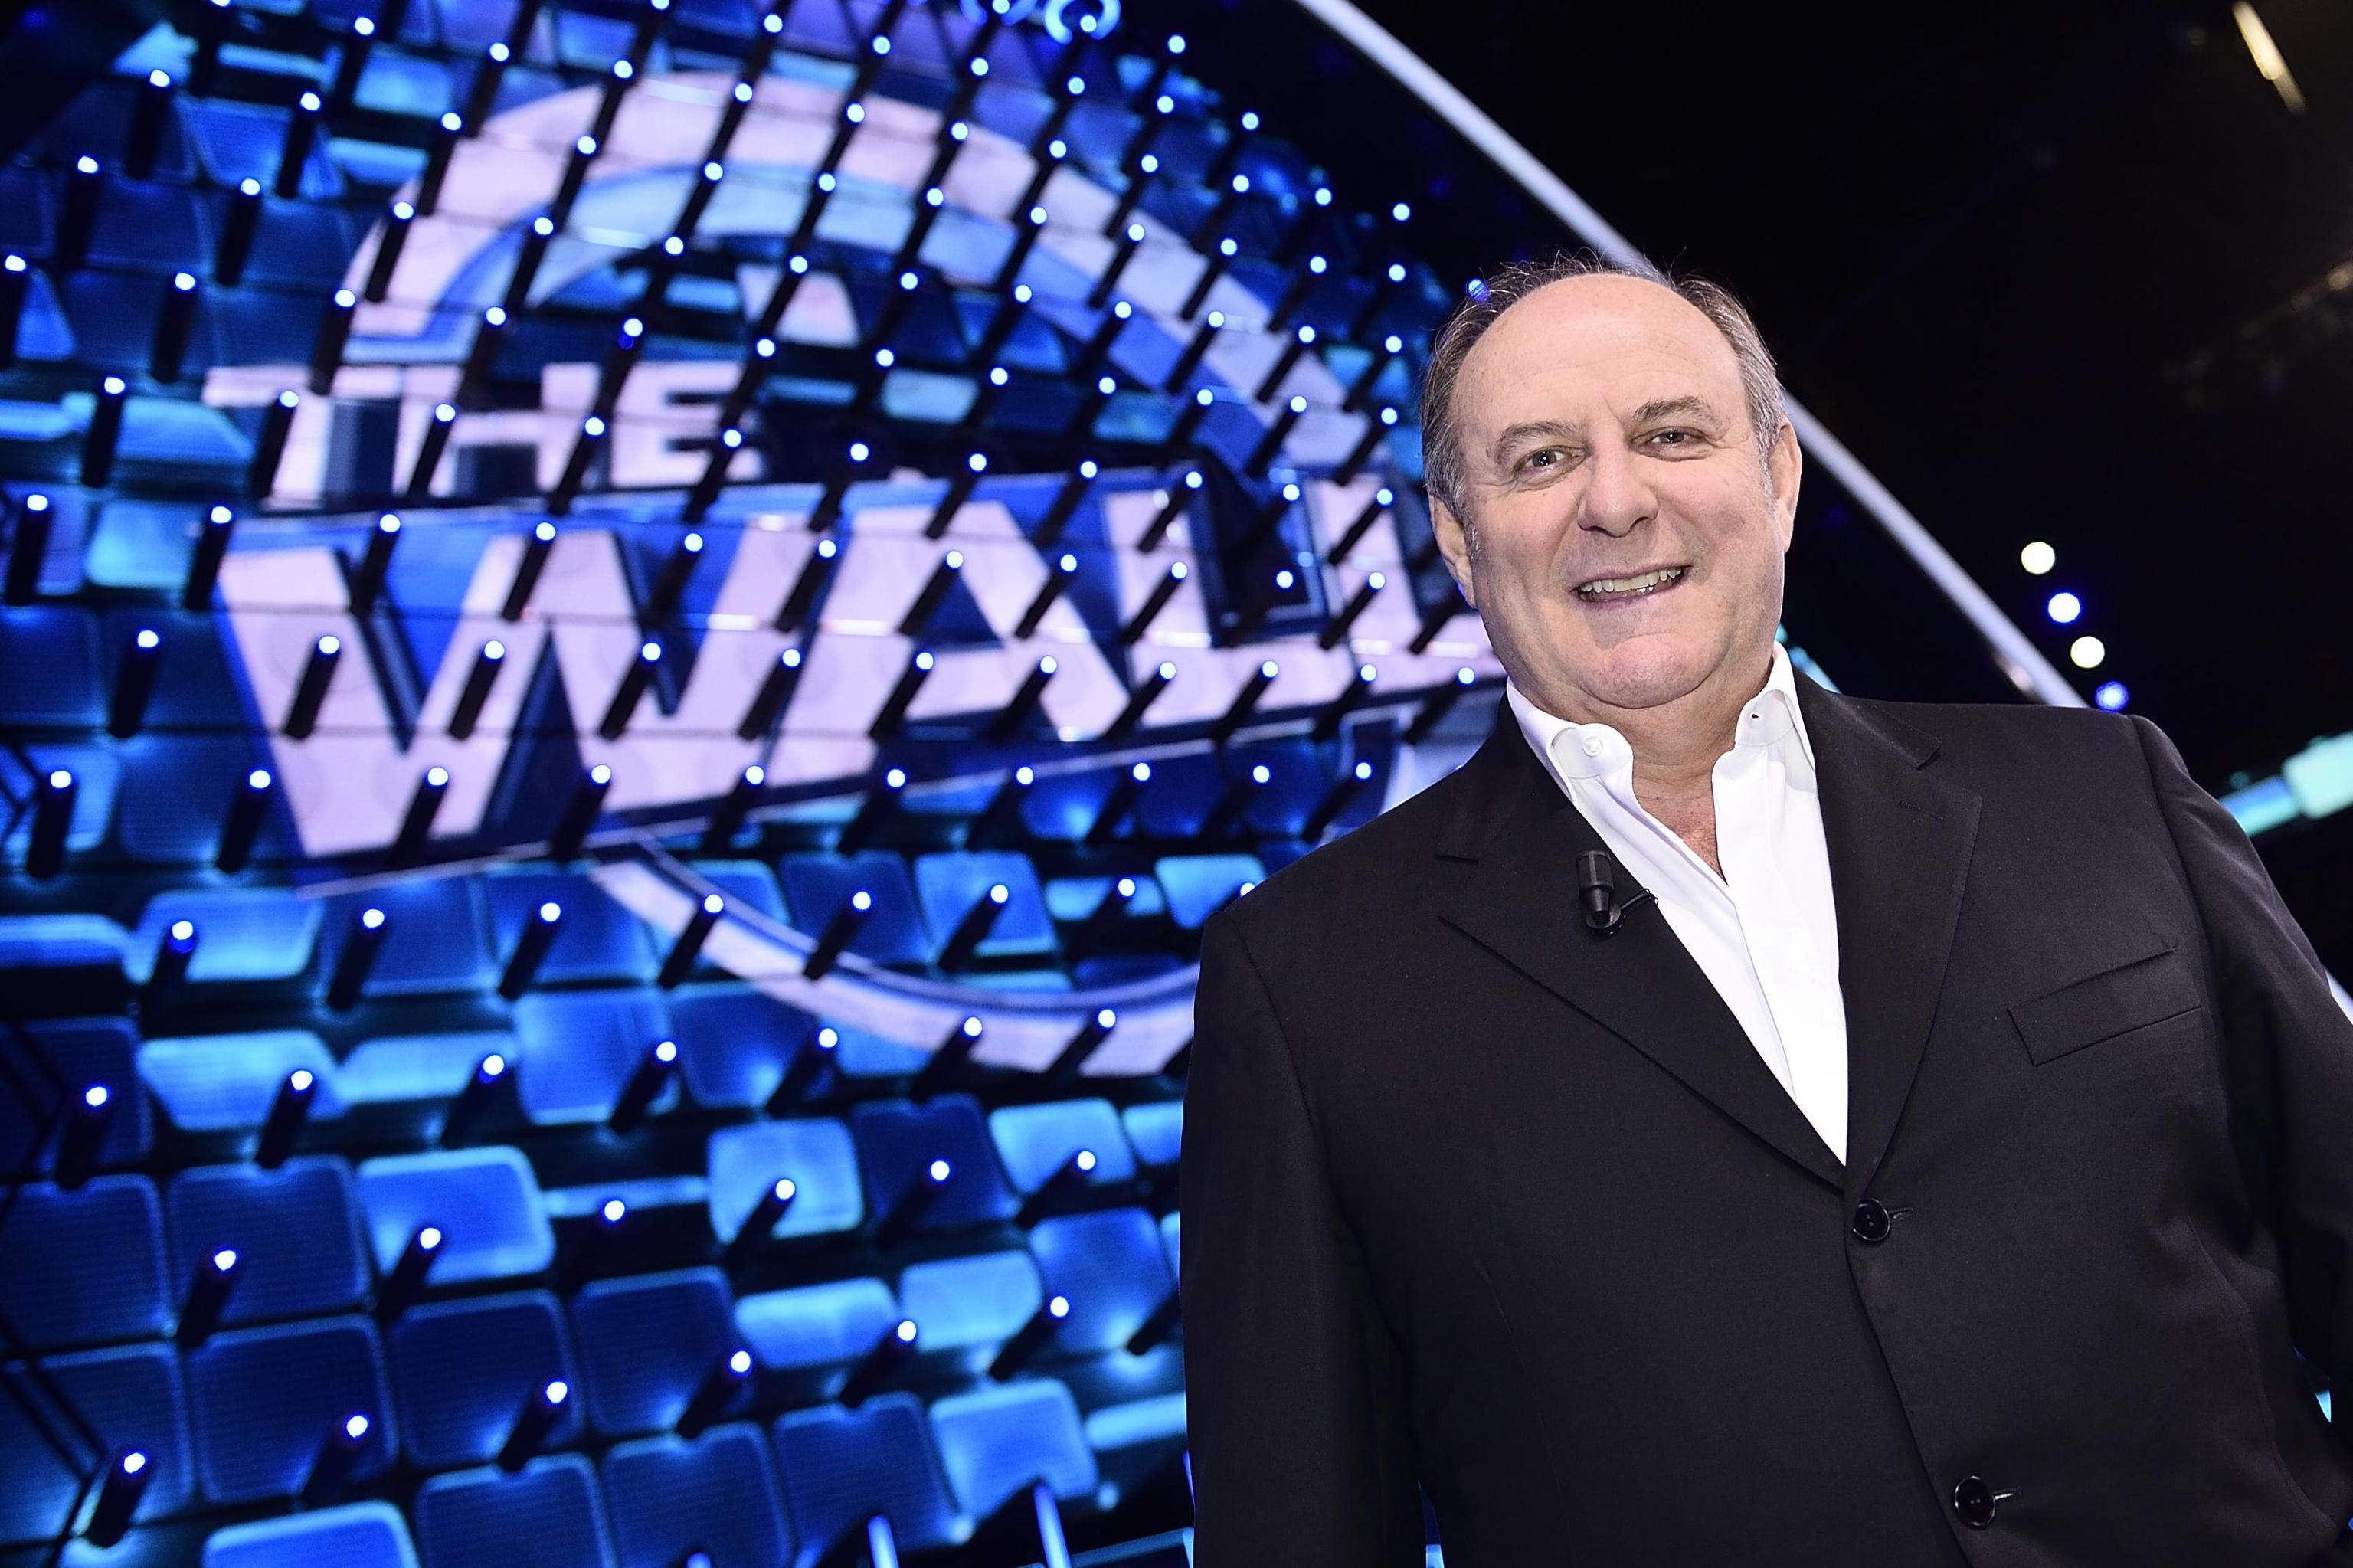 The Wall, Gerry Scotti su Canale 5 con un nuovo game show dal 20 novembre 2017